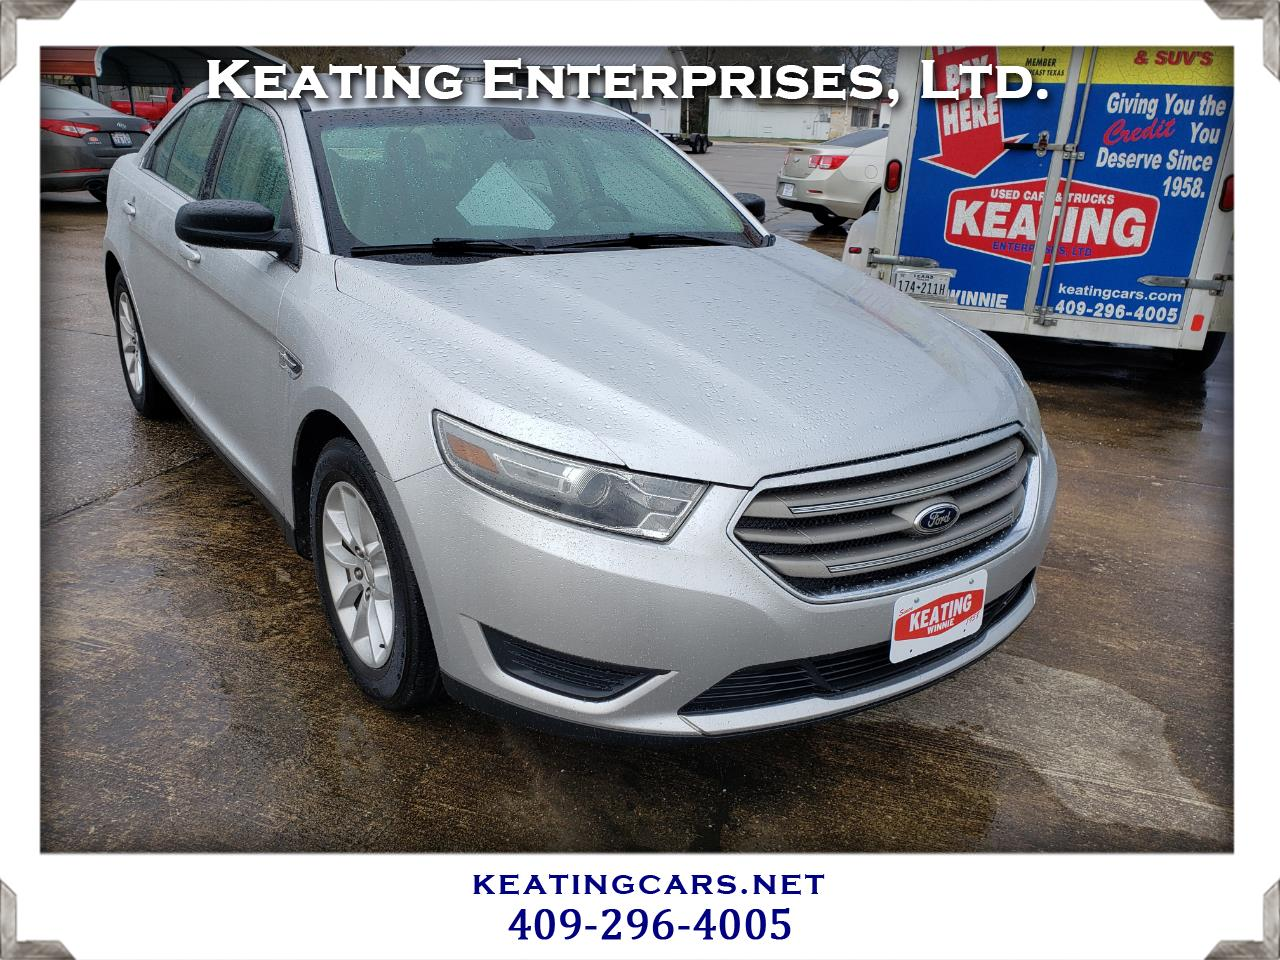 Ford Taurus 4dr Sdn SE FWD 2013